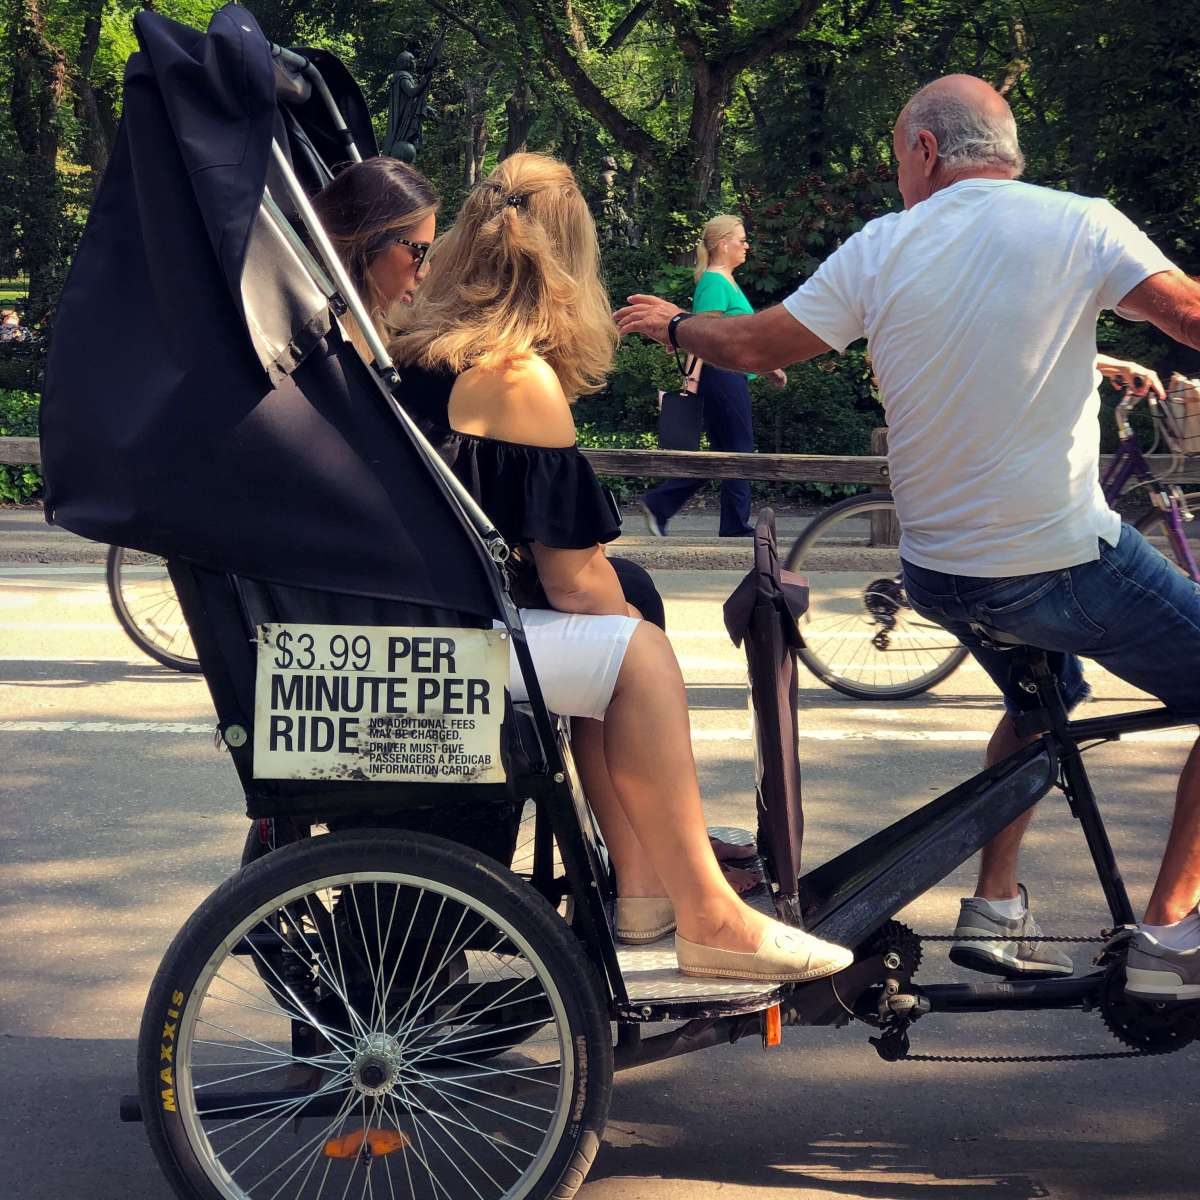 A local pedicab guide in Central Park, Manhattan, New York City